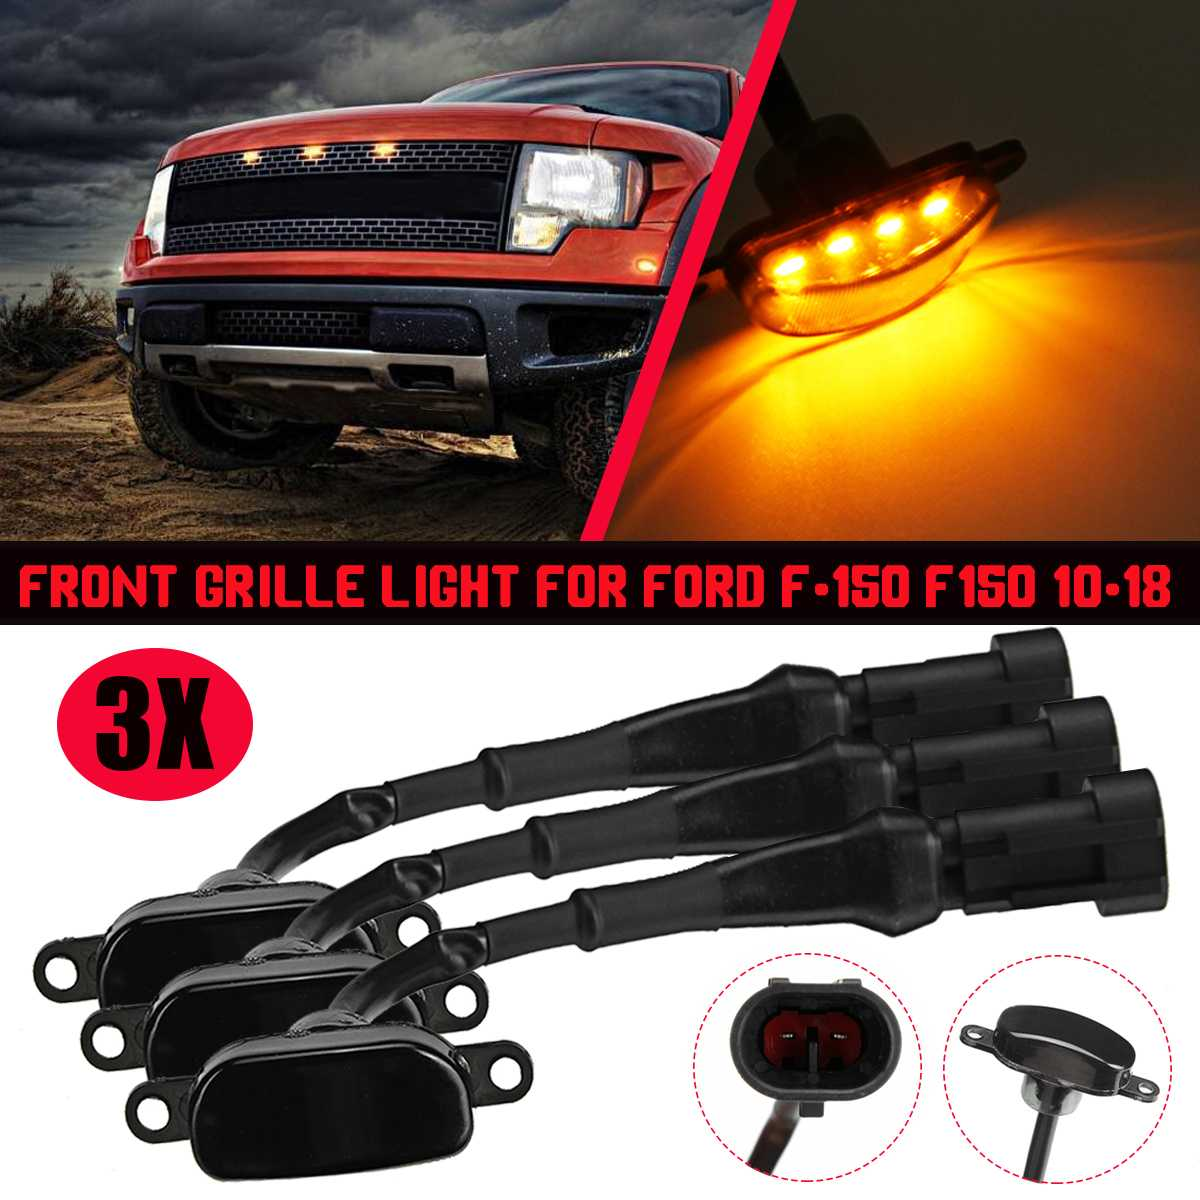 Car LED Front Grill Light Raptor Style Smoke Amber Grille Lamps For Ford F-150 F150 2010 2011 2012 2013 2014 2015 2016 2017 2018